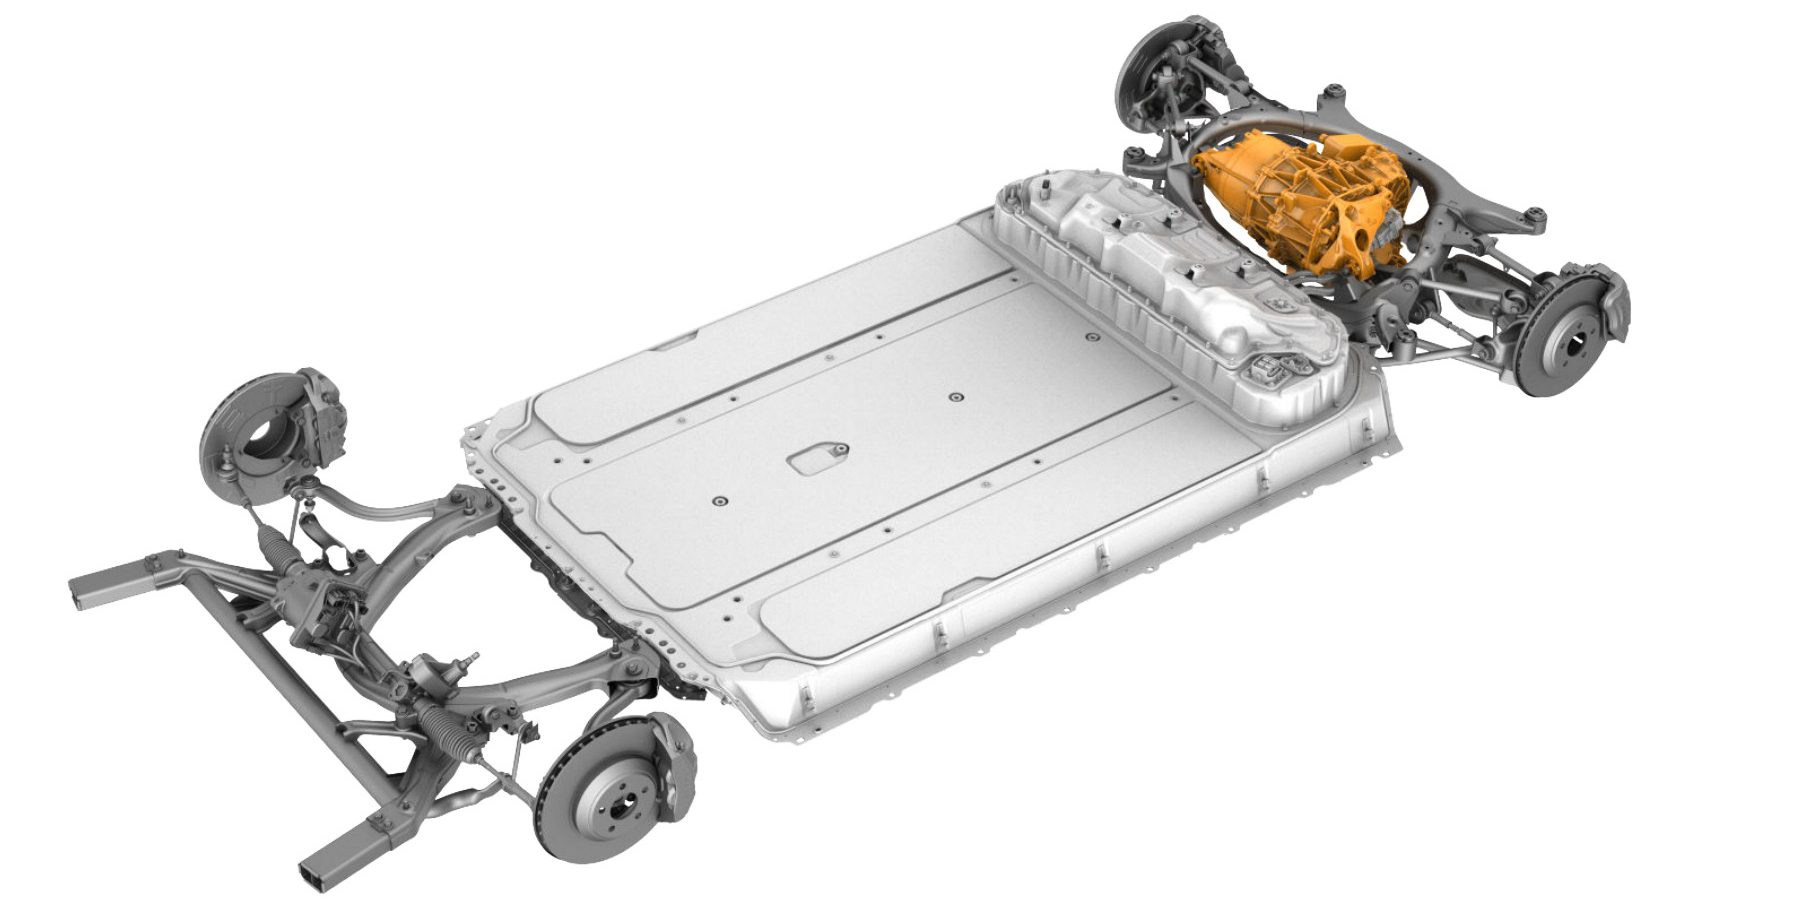 Tesla Model 3  Interesting Look At Powertrain And Chassis